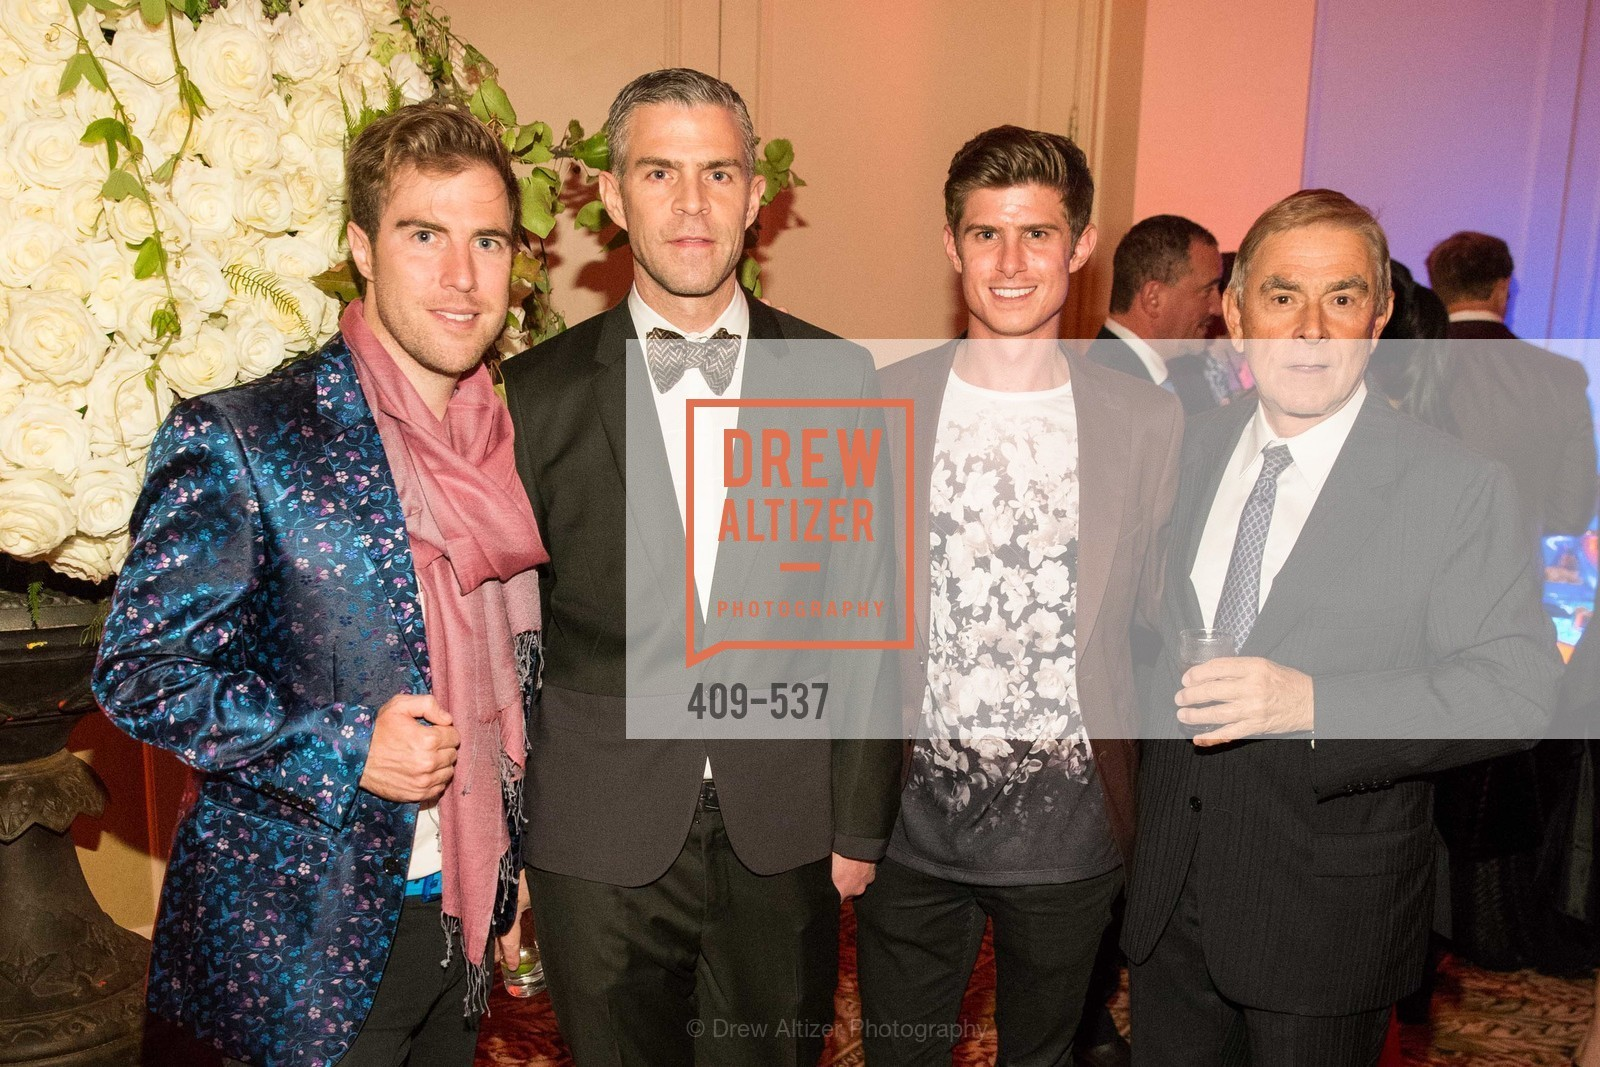 Matthew Kimball, James Rogers, Michael Roderick, John Cello, TOP OF THE MARK'S 75TH Anniversary Party, US, November 6th, 2014,Drew Altizer, Drew Altizer Photography, full-service agency, private events, San Francisco photographer, photographer california